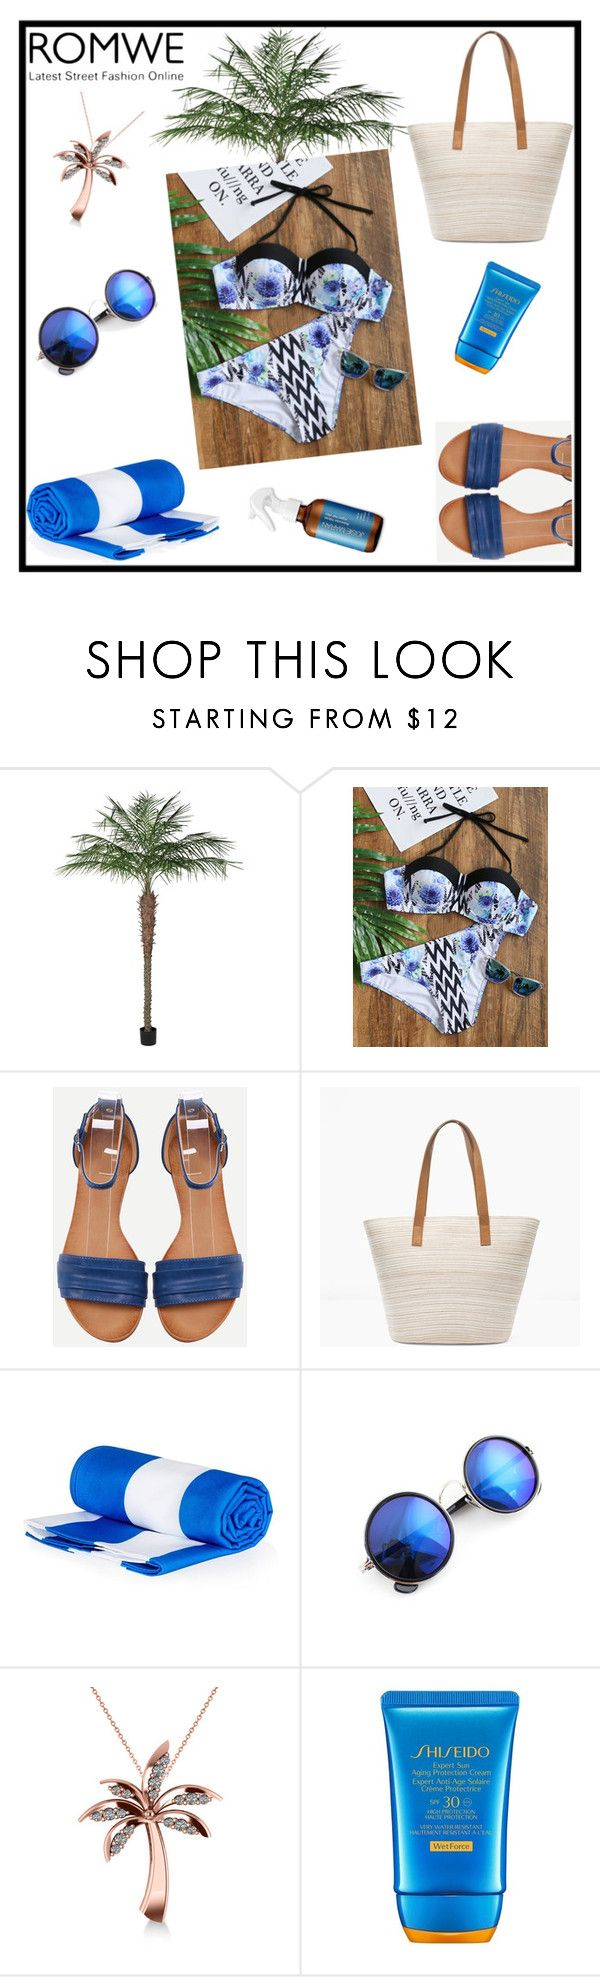 """""""New romwe contest bikini-set"""" by tlb0318 on Polyvore featuring Chico's, Allurez, Shiseido and Surfer Girl"""